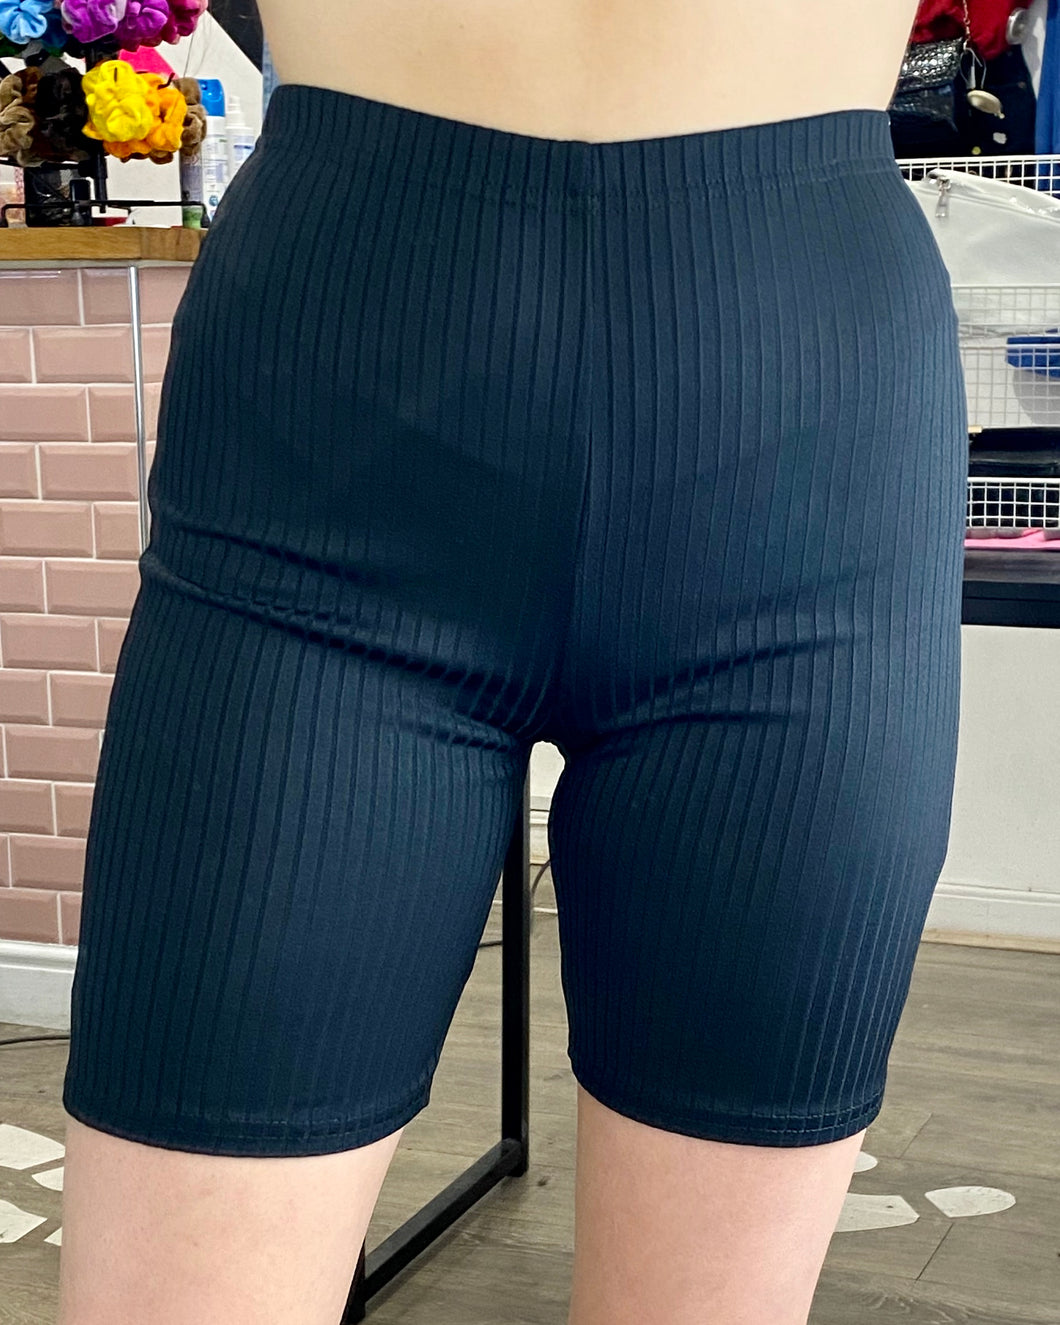 Vintage Inspired Bike Shorts in Black Ribbed Cycling in S/M